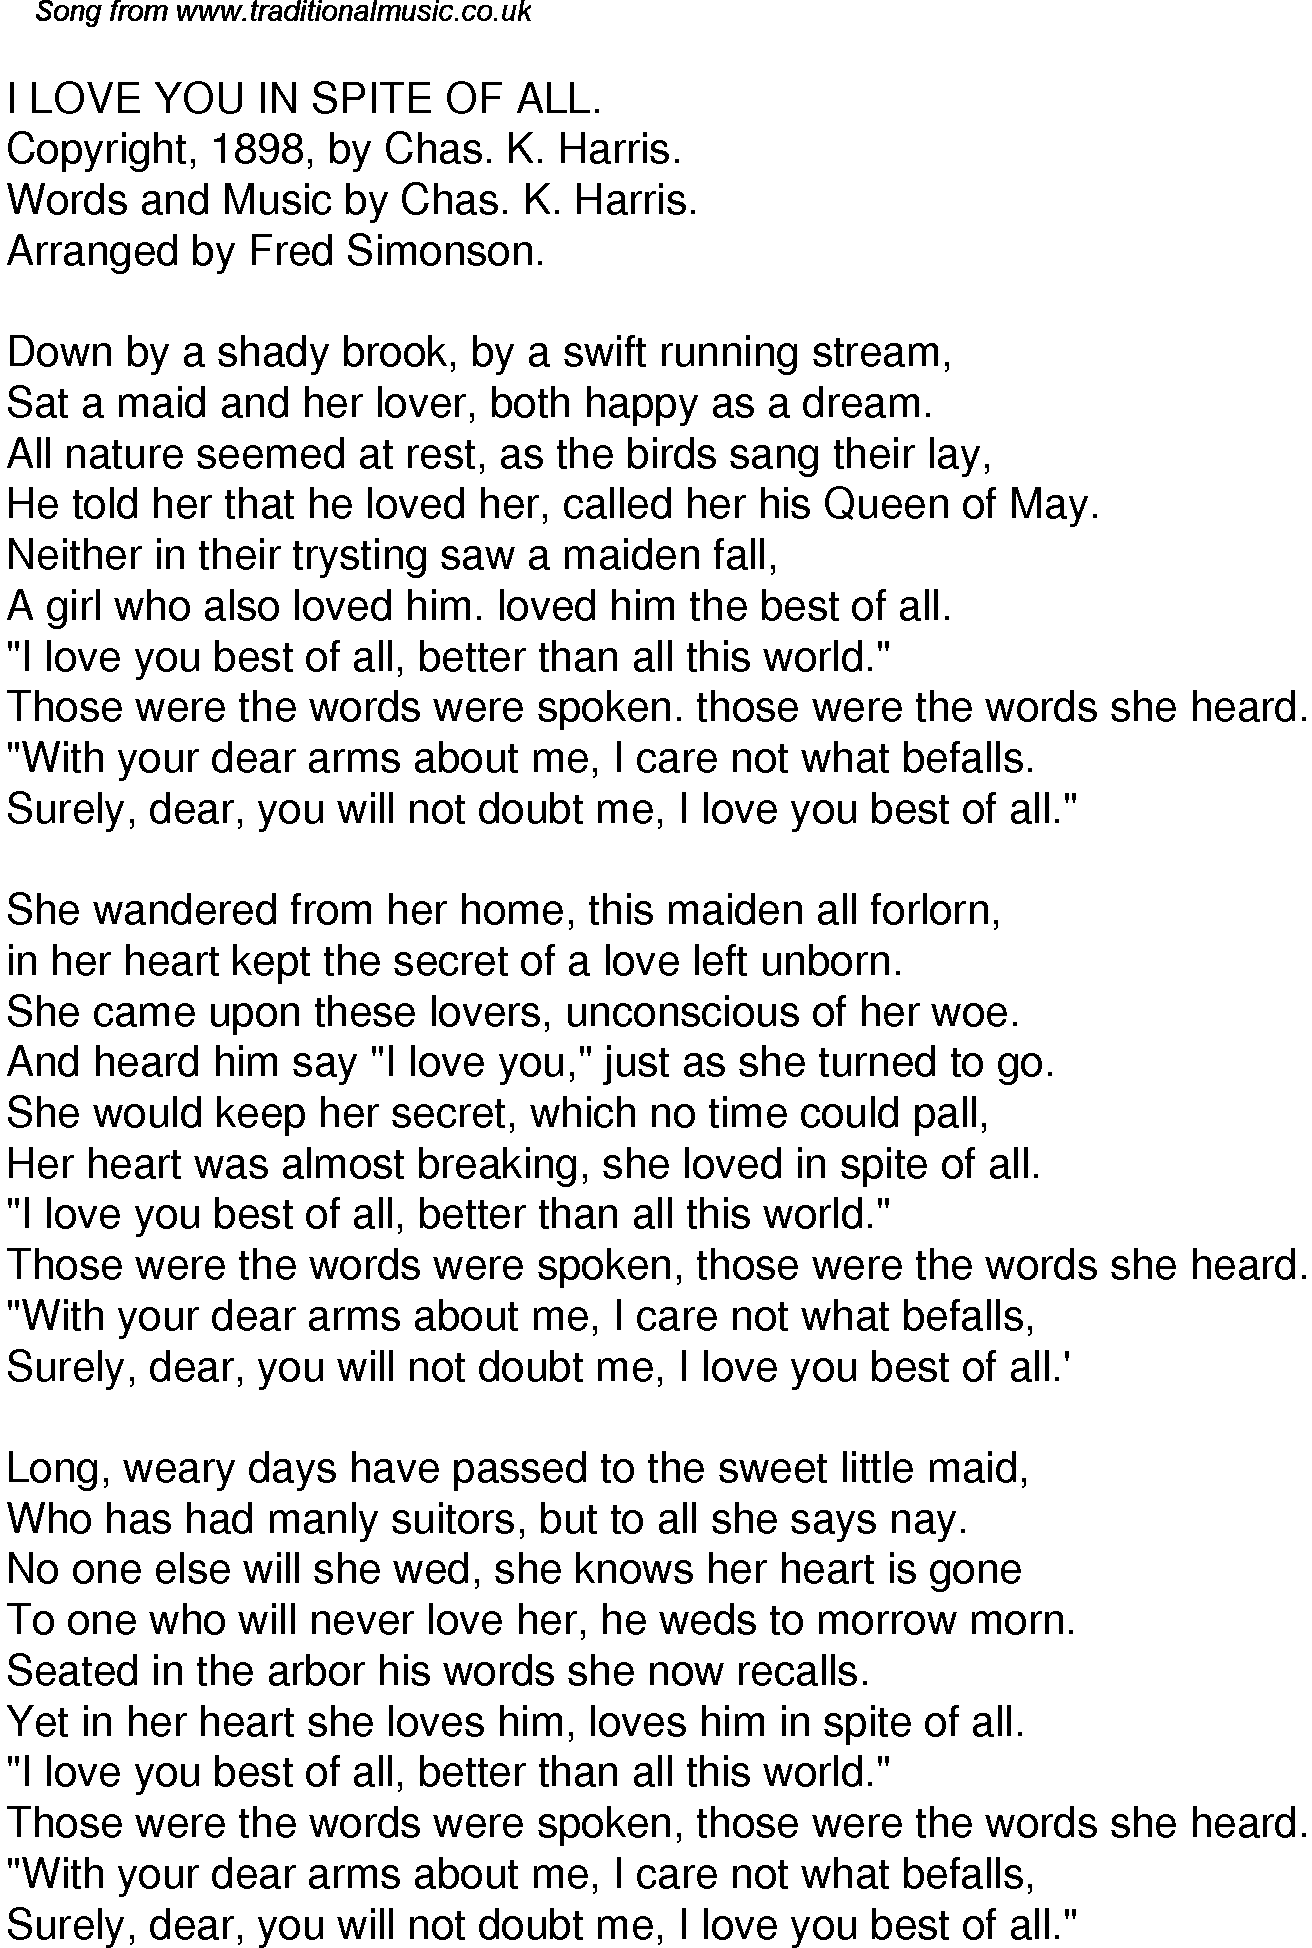 Old Time Song Lyrics for 61 I Love You In Spite Of All